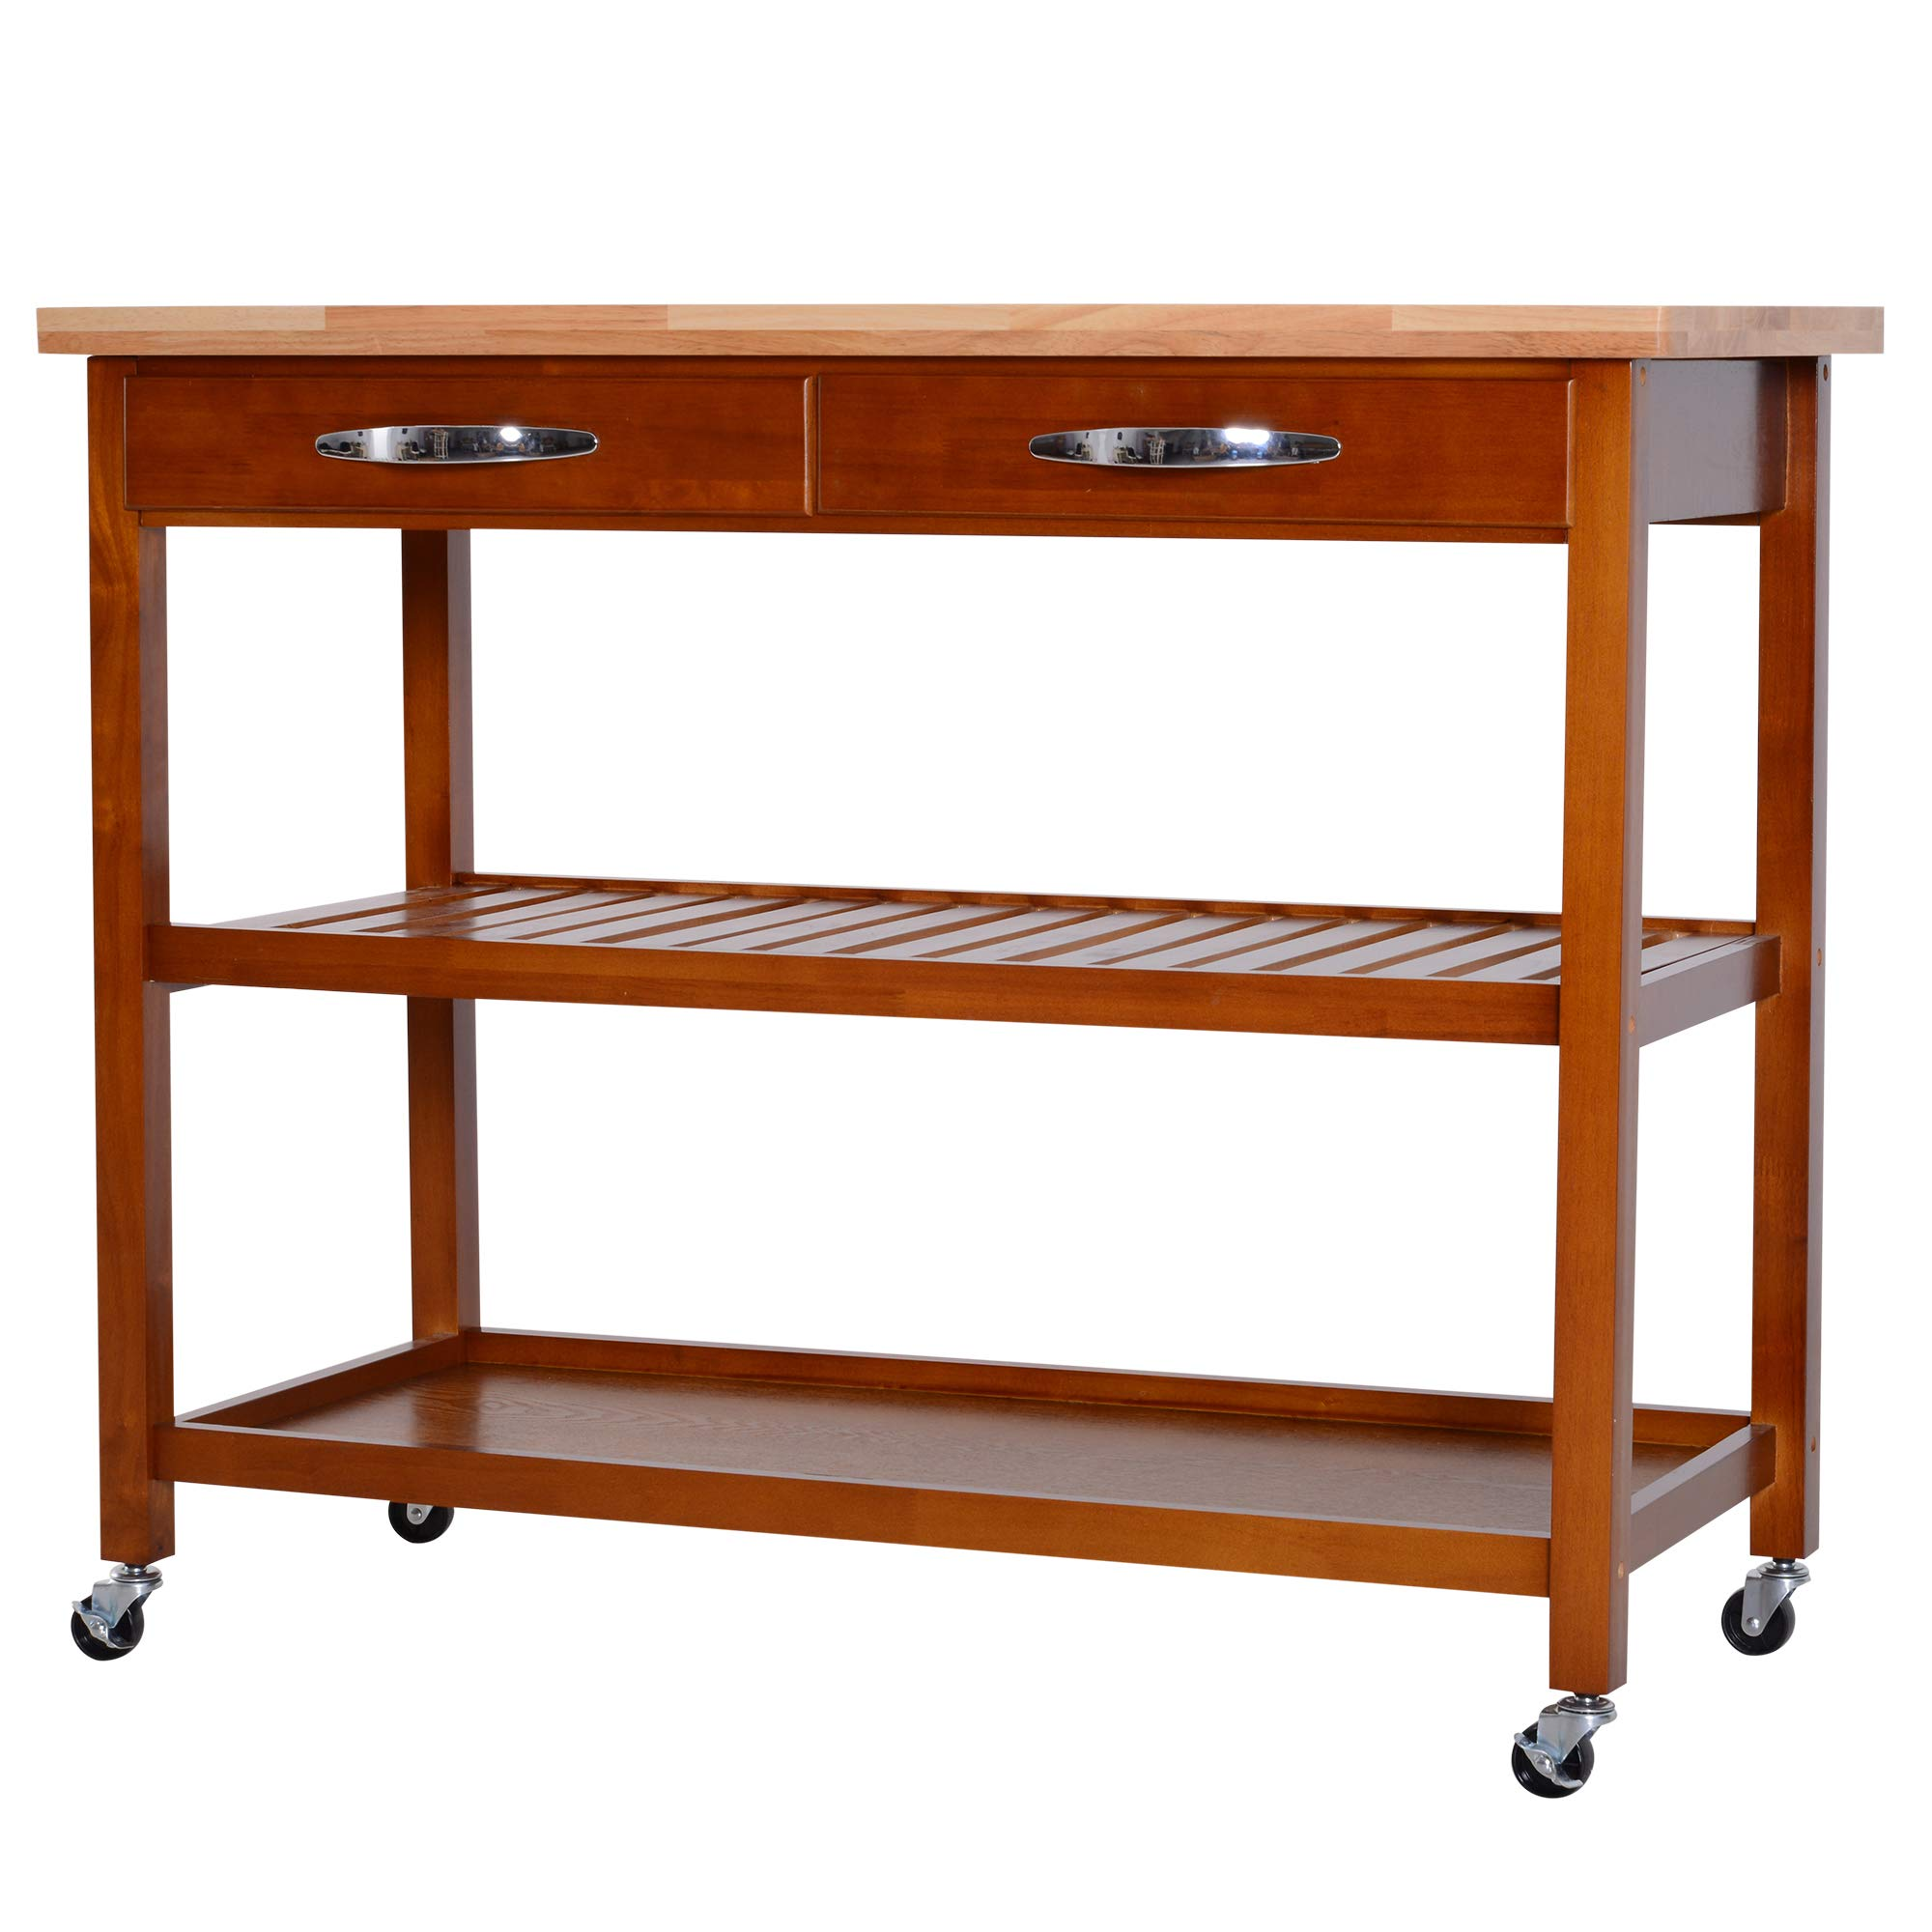 HOMCOM 44'' 3-Tier Rubberwood Kitchen Island Cart on Wheels - Brown by HOMCOM (Image #1)